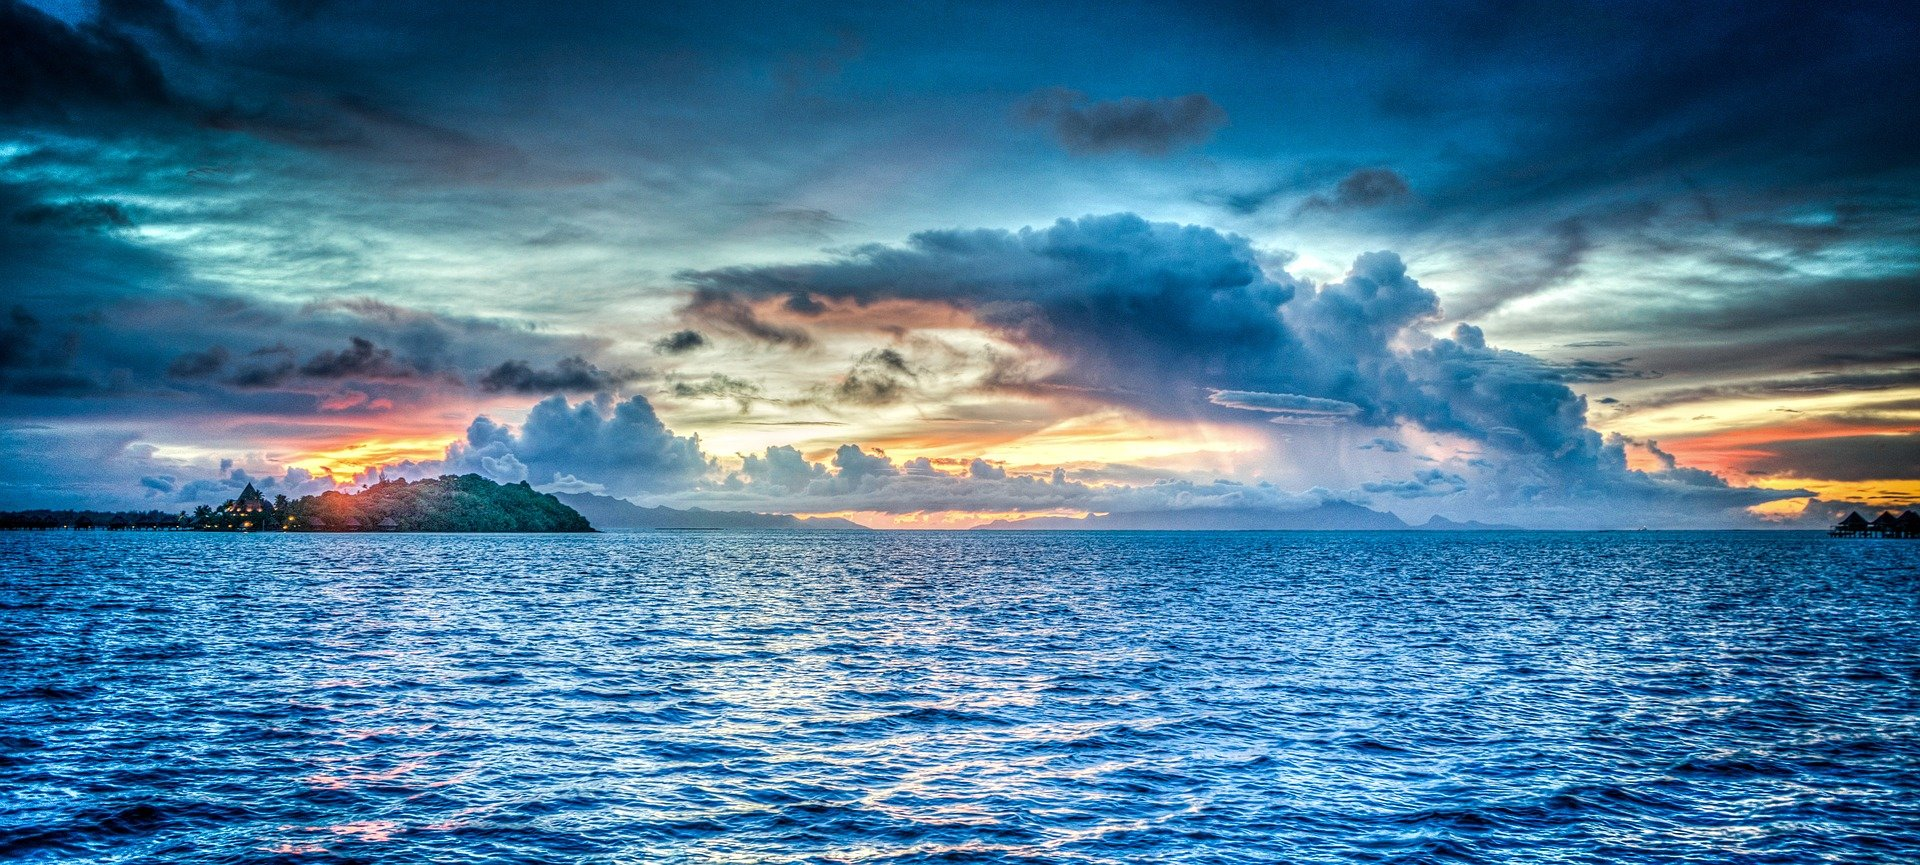 how nutrients are removed in oxygen depleted regions of the ocean